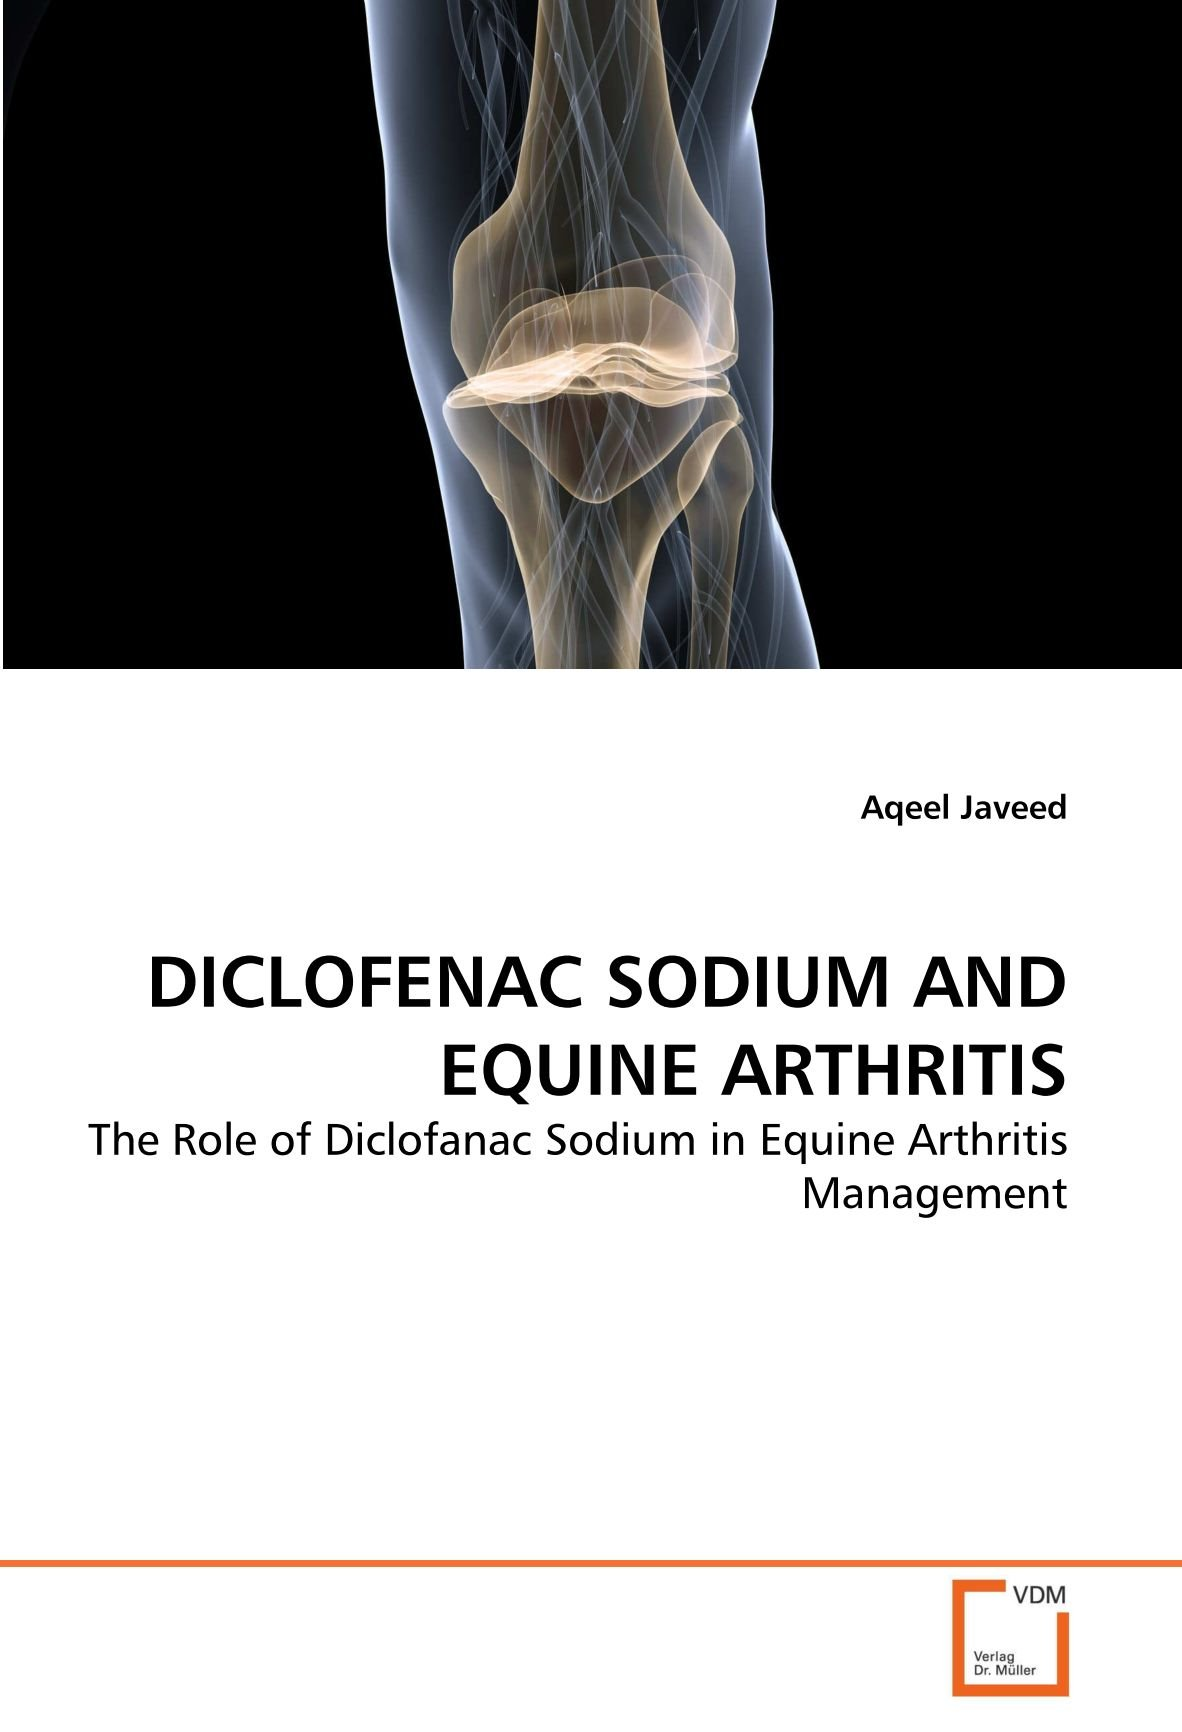 Diclofenac Sodium And Equine Arthritis The Role Of Diclofanac